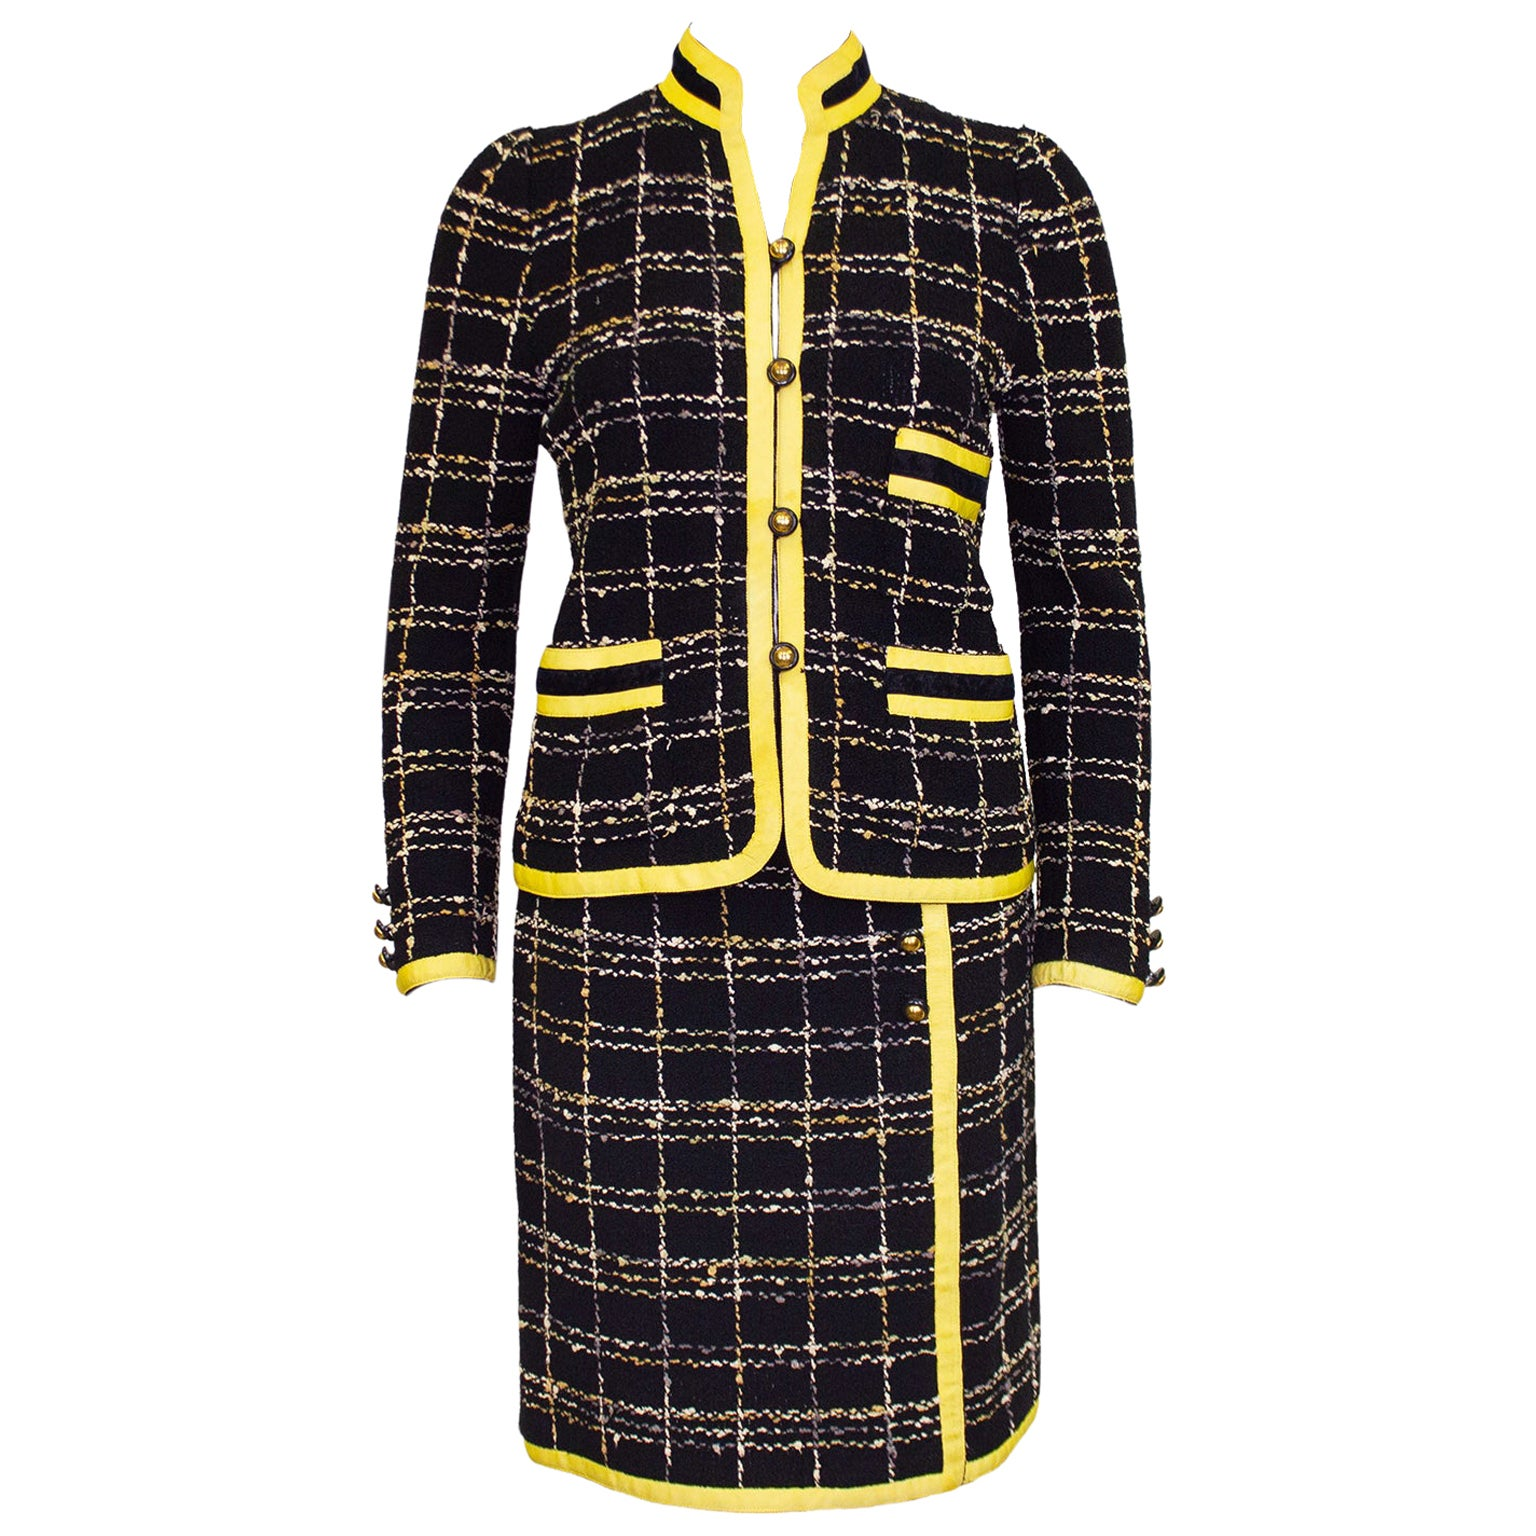 1980s Adolfo Black Wool Knit Plaid Skirt Suit with Yellow Trim